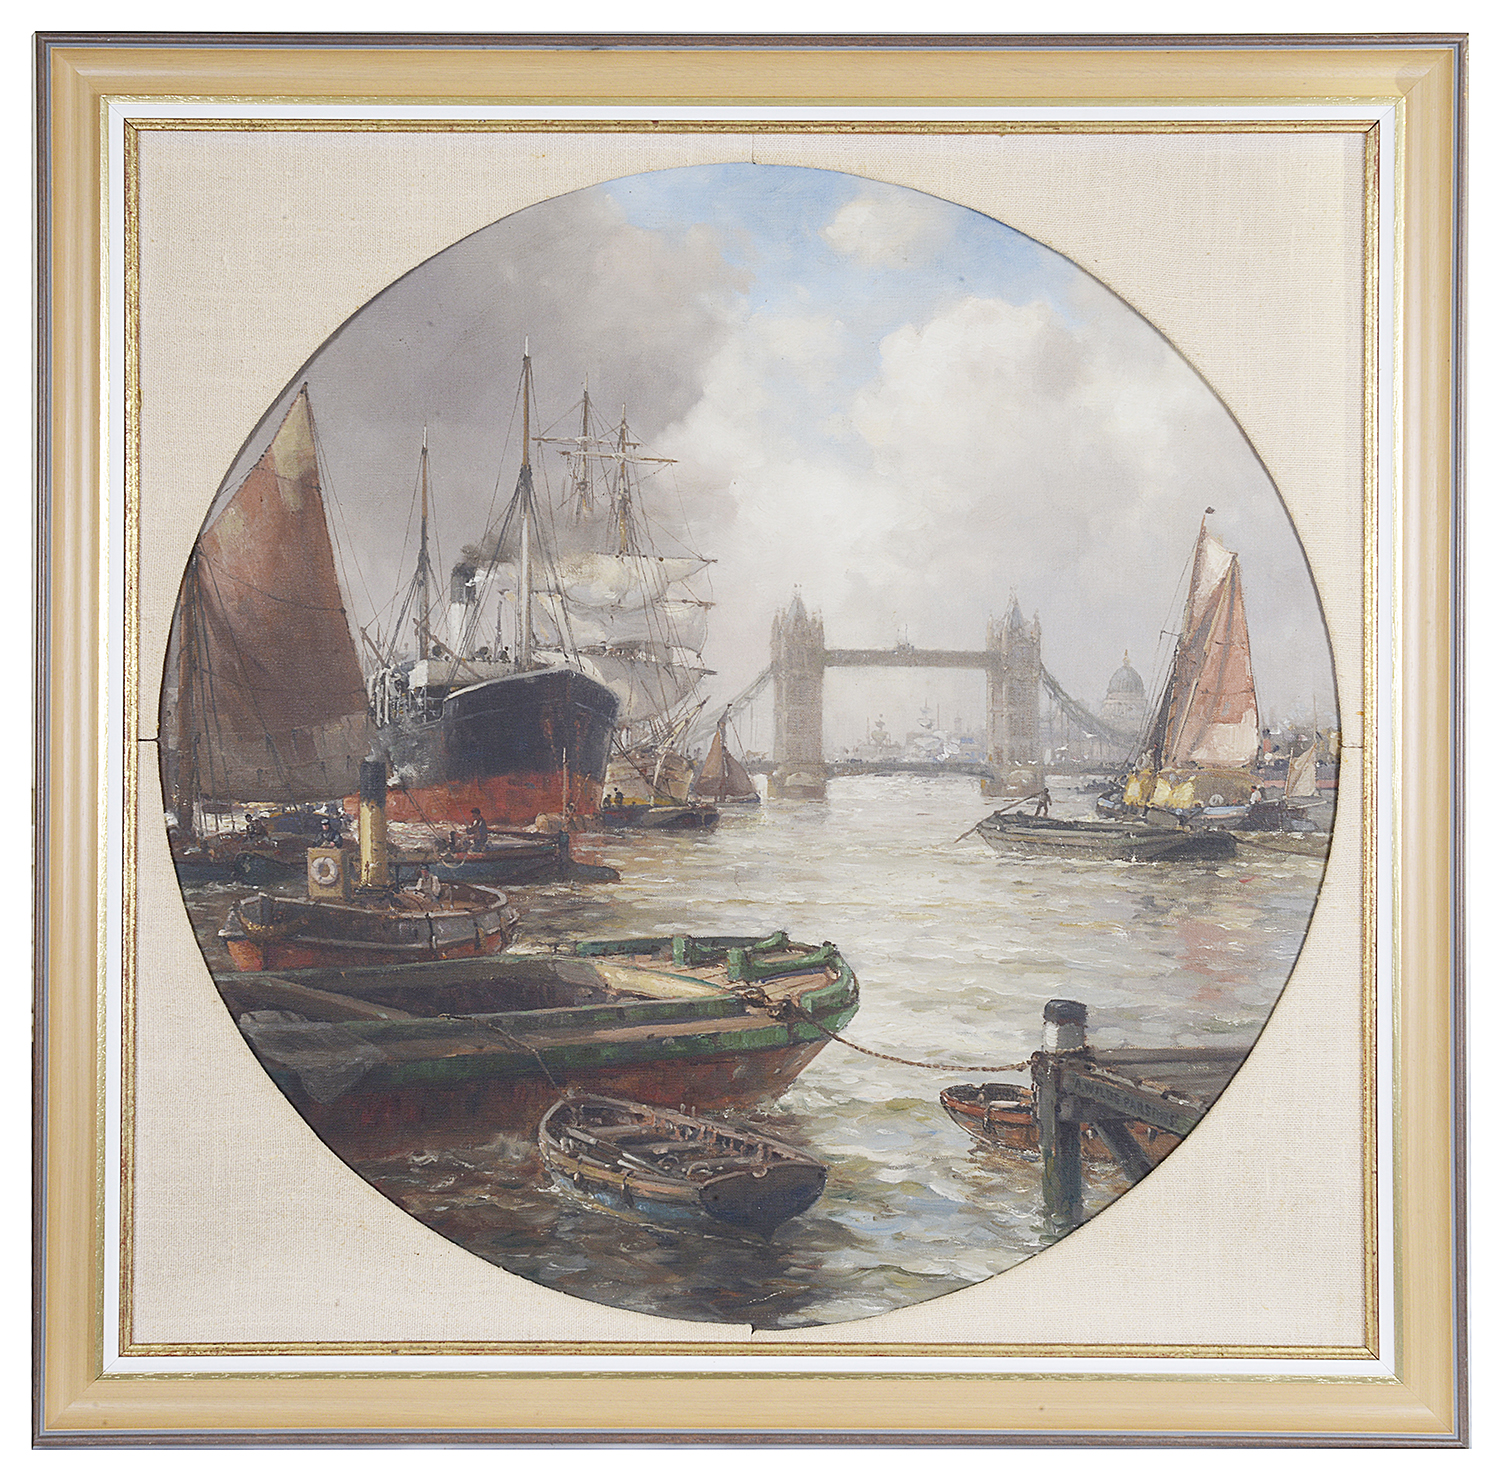 Lot 46 - Arthur Wilde Parsons (Brit., 1854 - 1931) 'Tower Bridge' oil on canvas